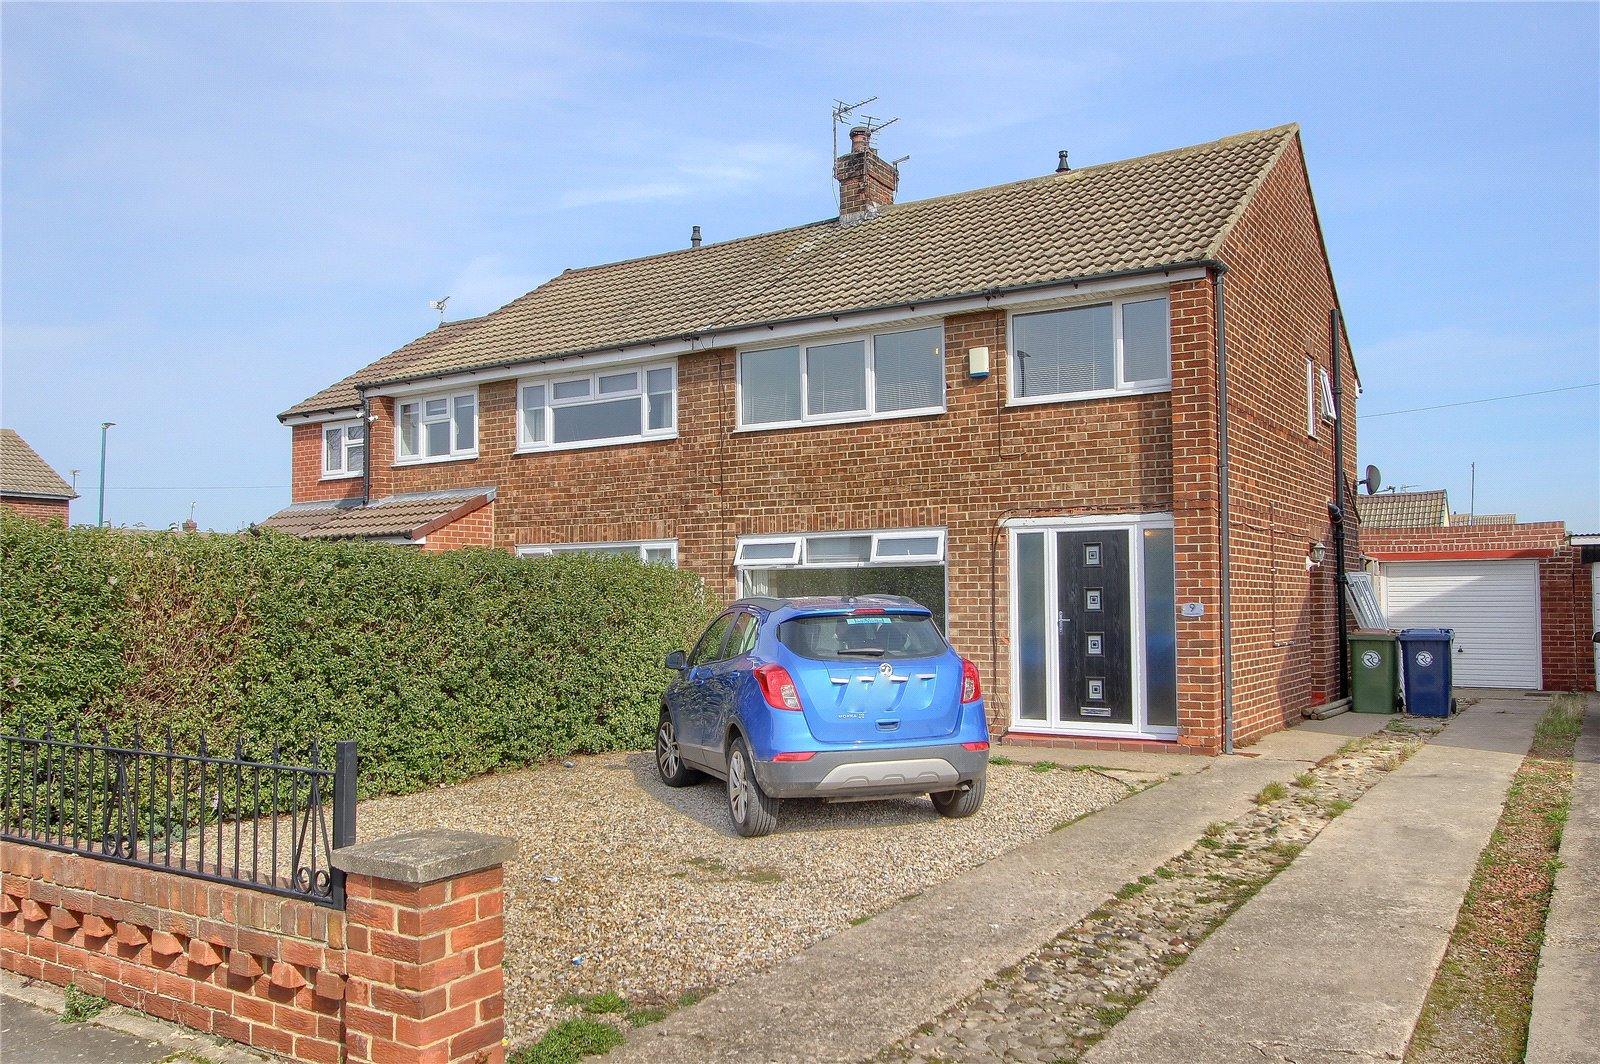 3 bed house for sale in Cotswold Drive, Redcar - Property Image 1